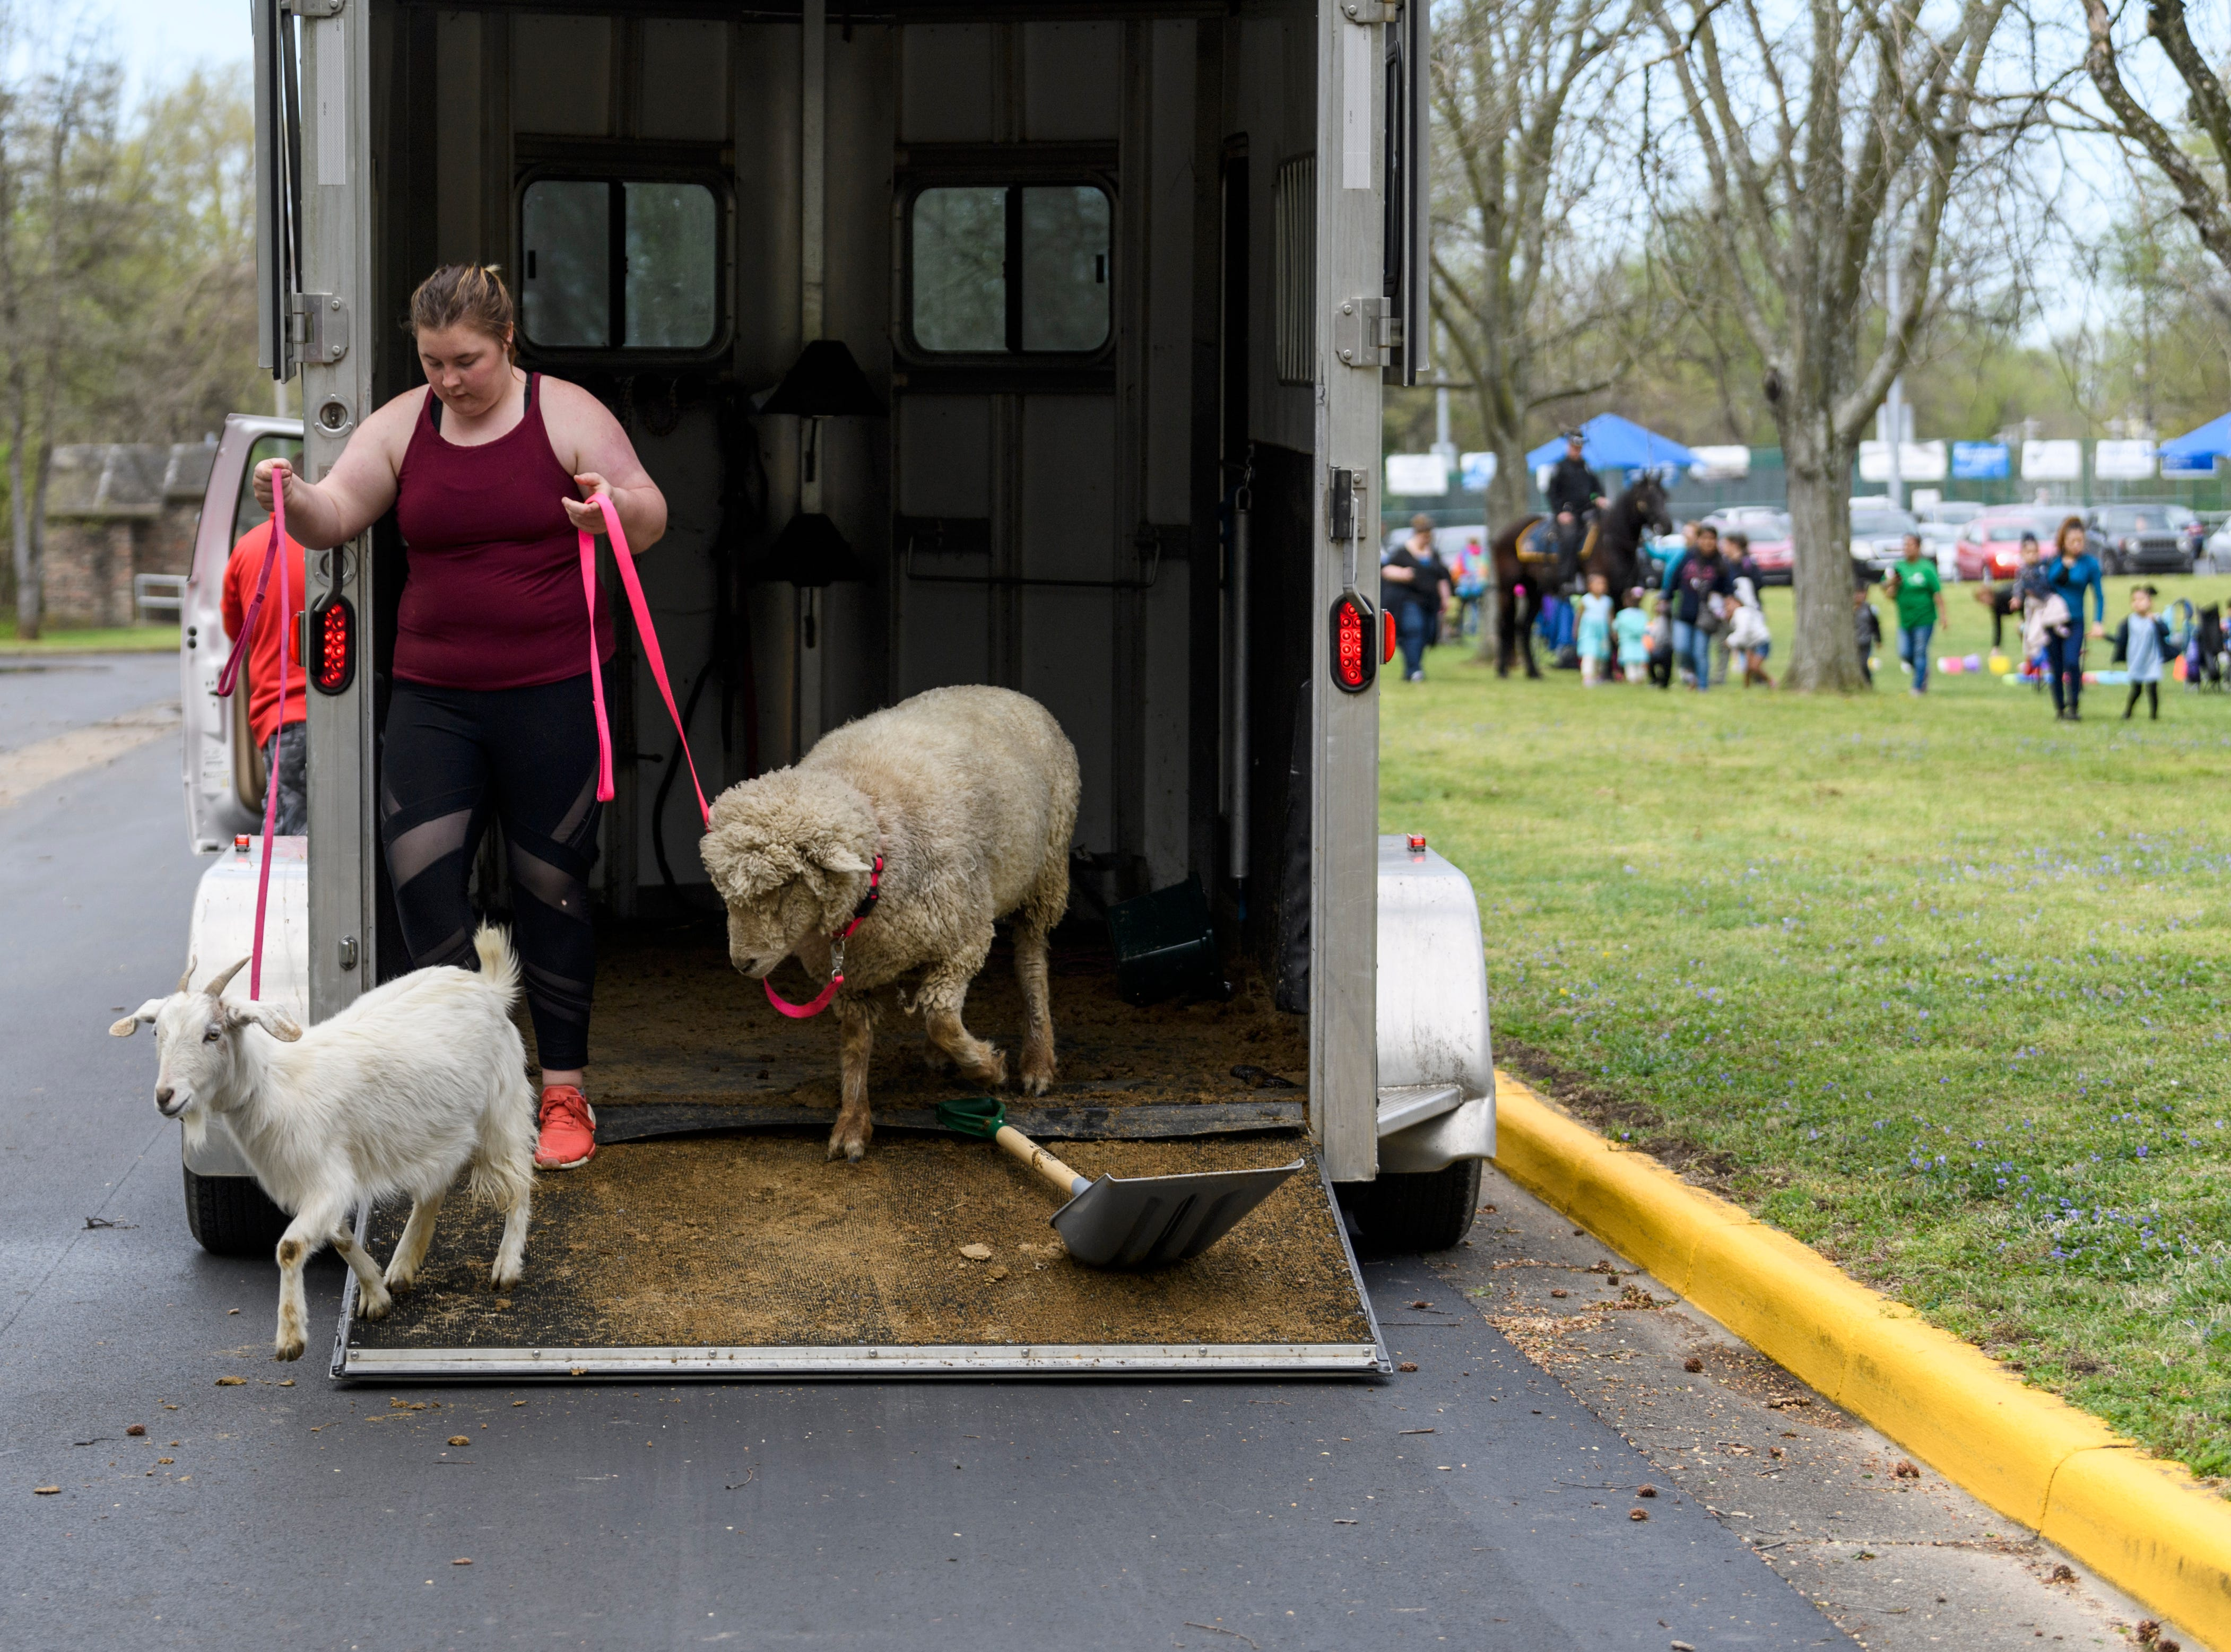 Emily Rexing of Lil' Rexing's Pony Express leads a goat and a sheep to the petting zoo ring set up for the annual Family Fun Day for the Community Action Program of Evansville & Vanderburgh County, Inc. (CAPE) Head Start and Early Head Start Early Childhood Education programs at Wesselman Park in Evansville, Ind., Friday, April 12, 2019.